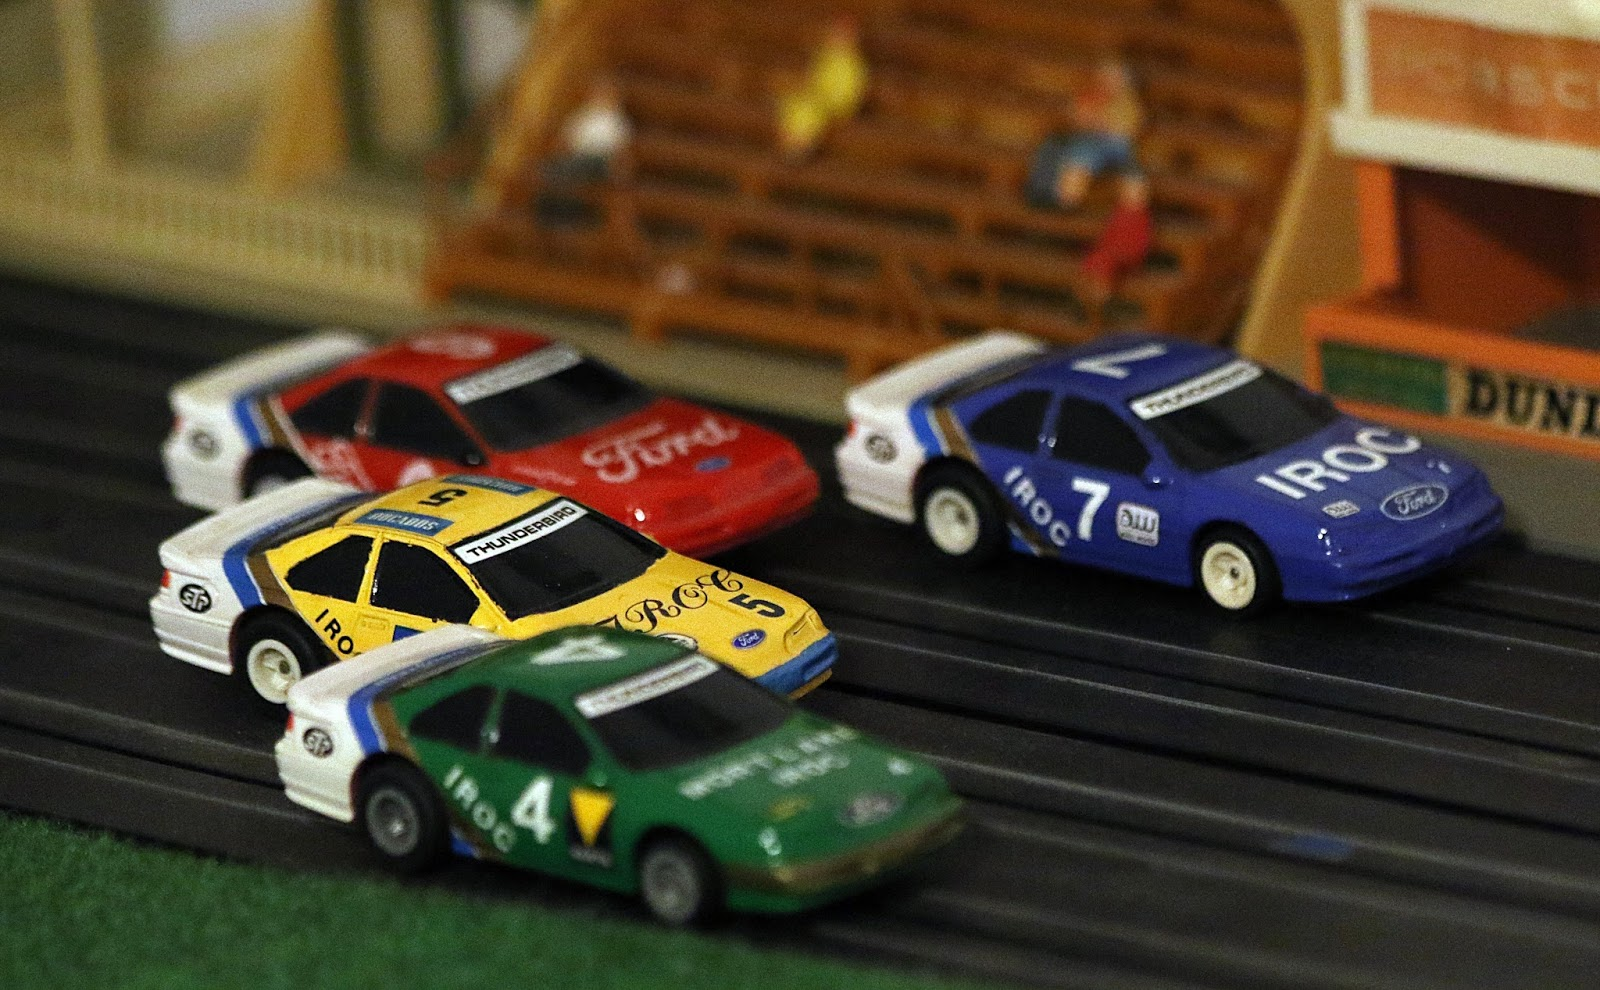 Rouen Les Afx 64 Memories Of Ho Scale English National Slot Car Racing Life Like Rokar Chassis Repair Parts And Diagrams We Had An Iroc Race Using Tomy Turbo Ford Thunderbirds At Peters First Meeting Mortlake In 1993